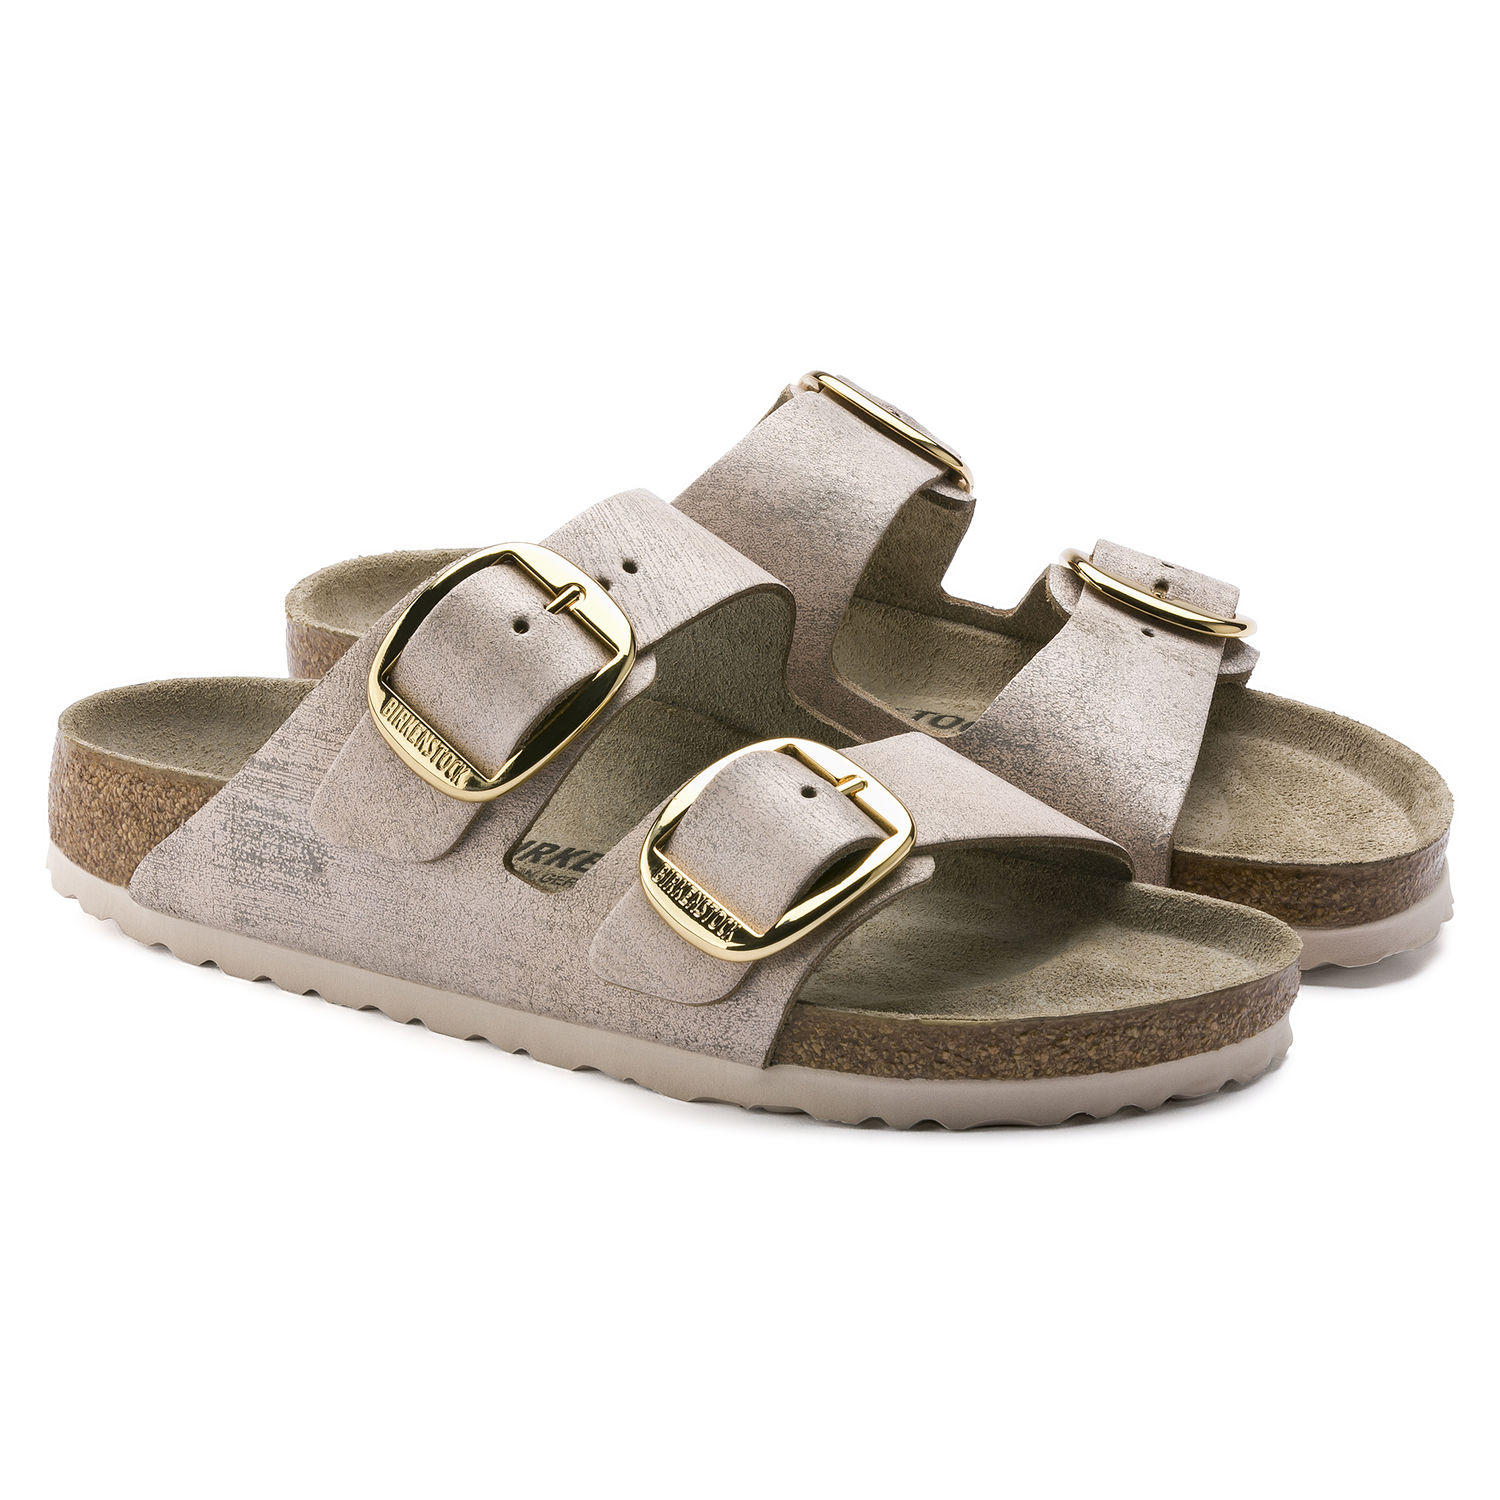 13a535ae7a8 ... Preview  Birkenstock Arizona Big Buckle Washed Metallic Rose Gold ...